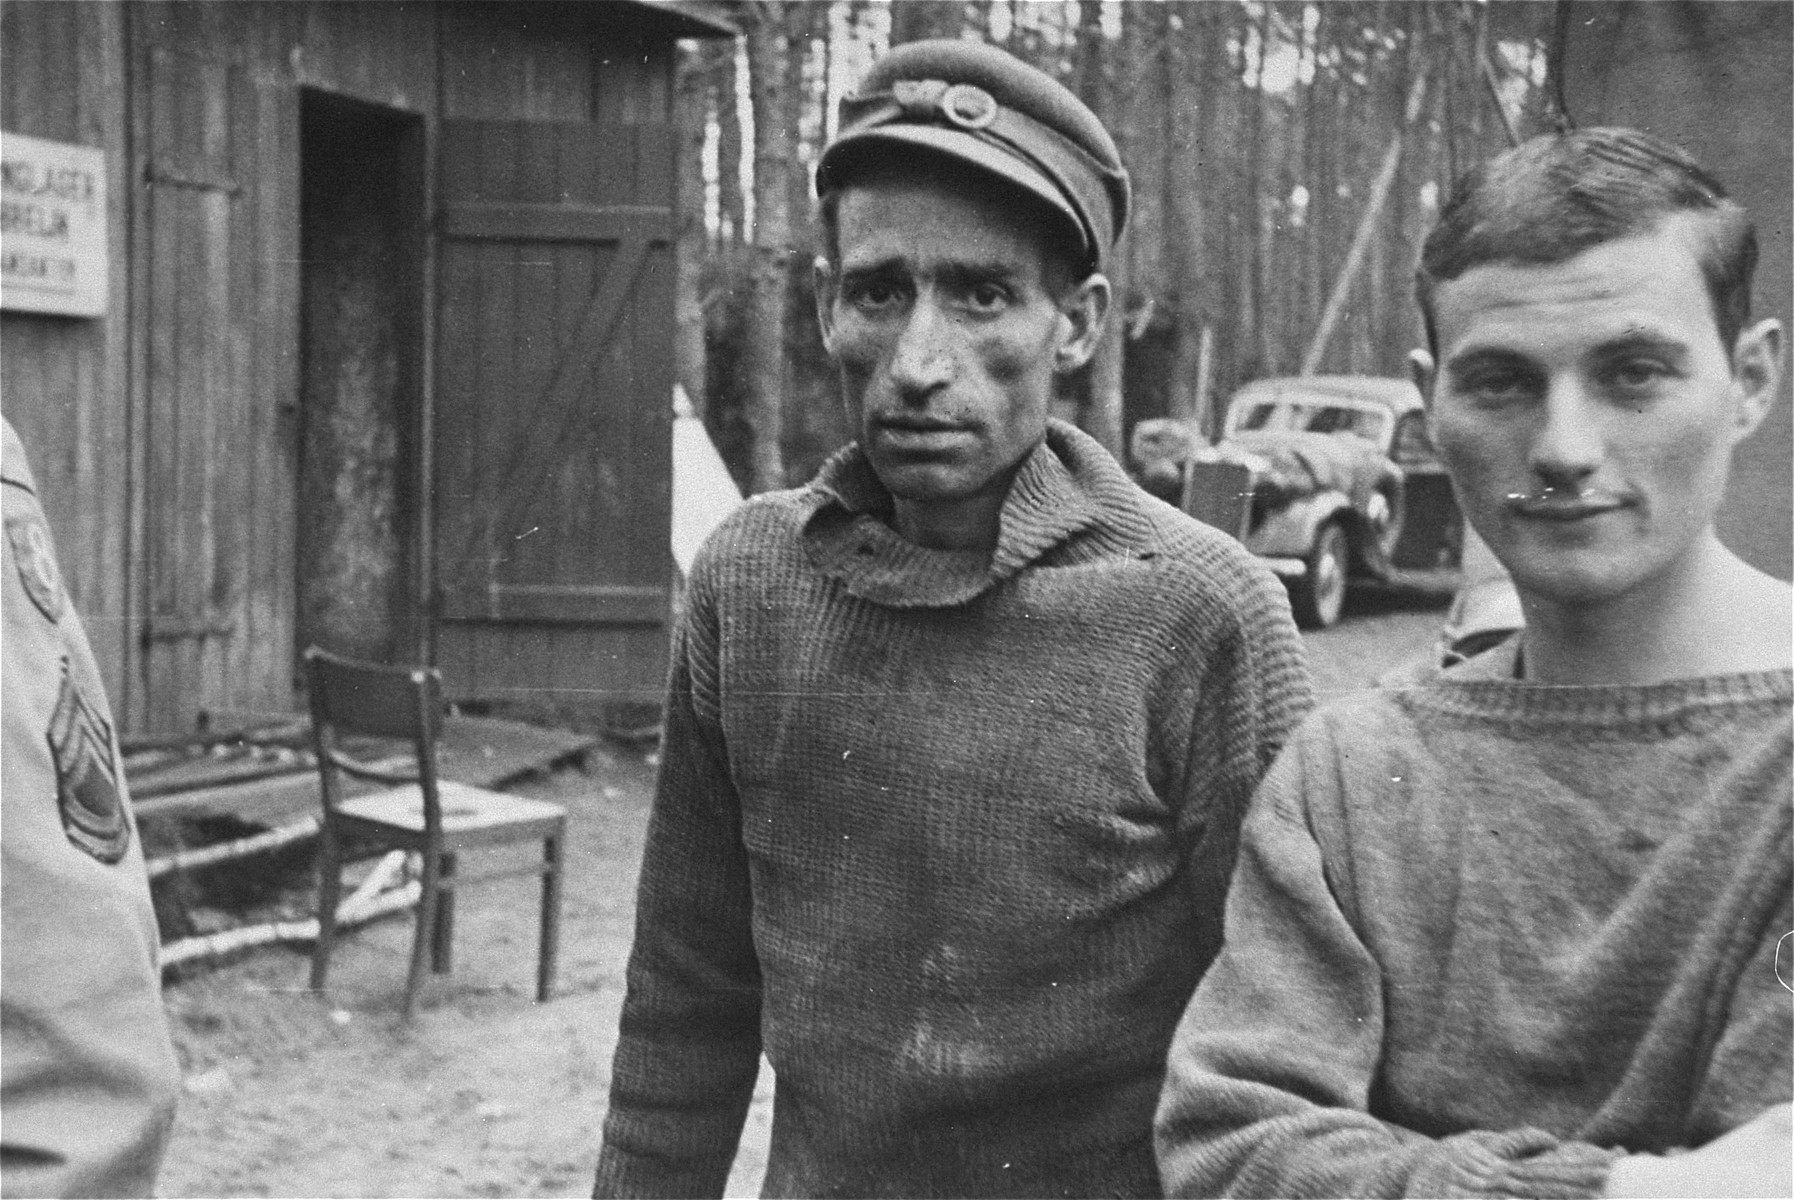 Survivor in the Woebbelin concentration camp.